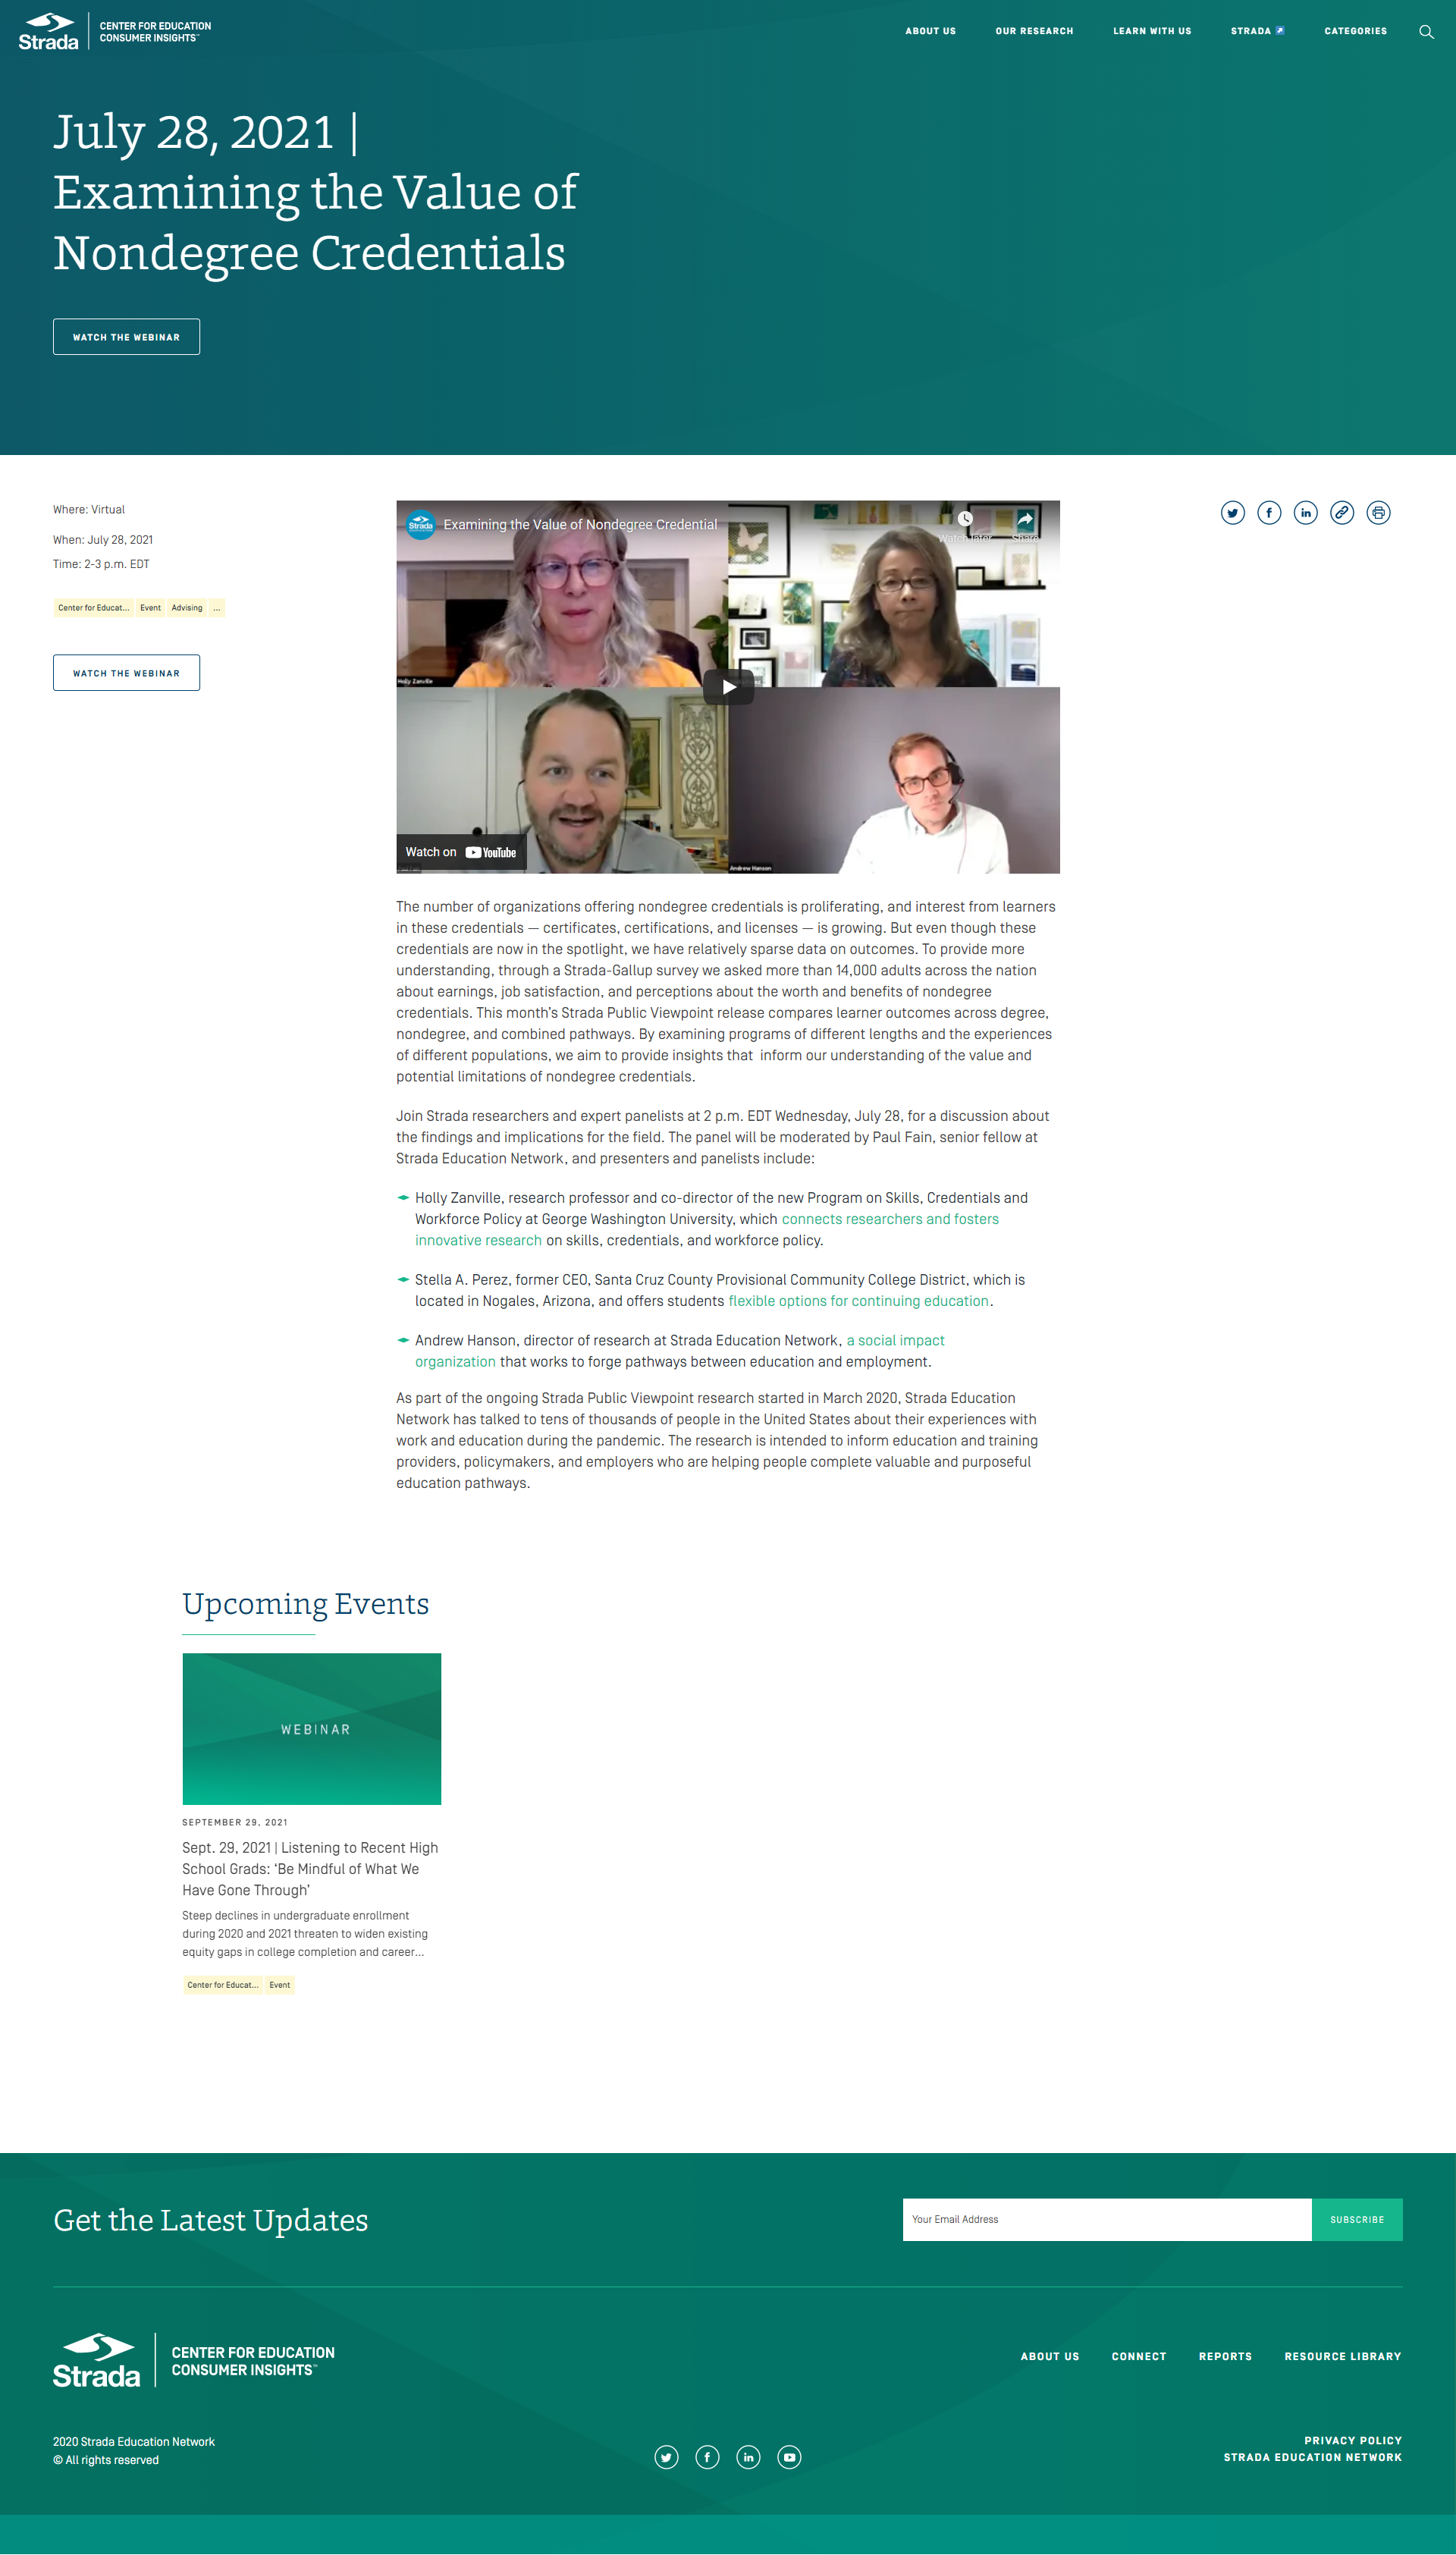 The Strada Education Network web page example